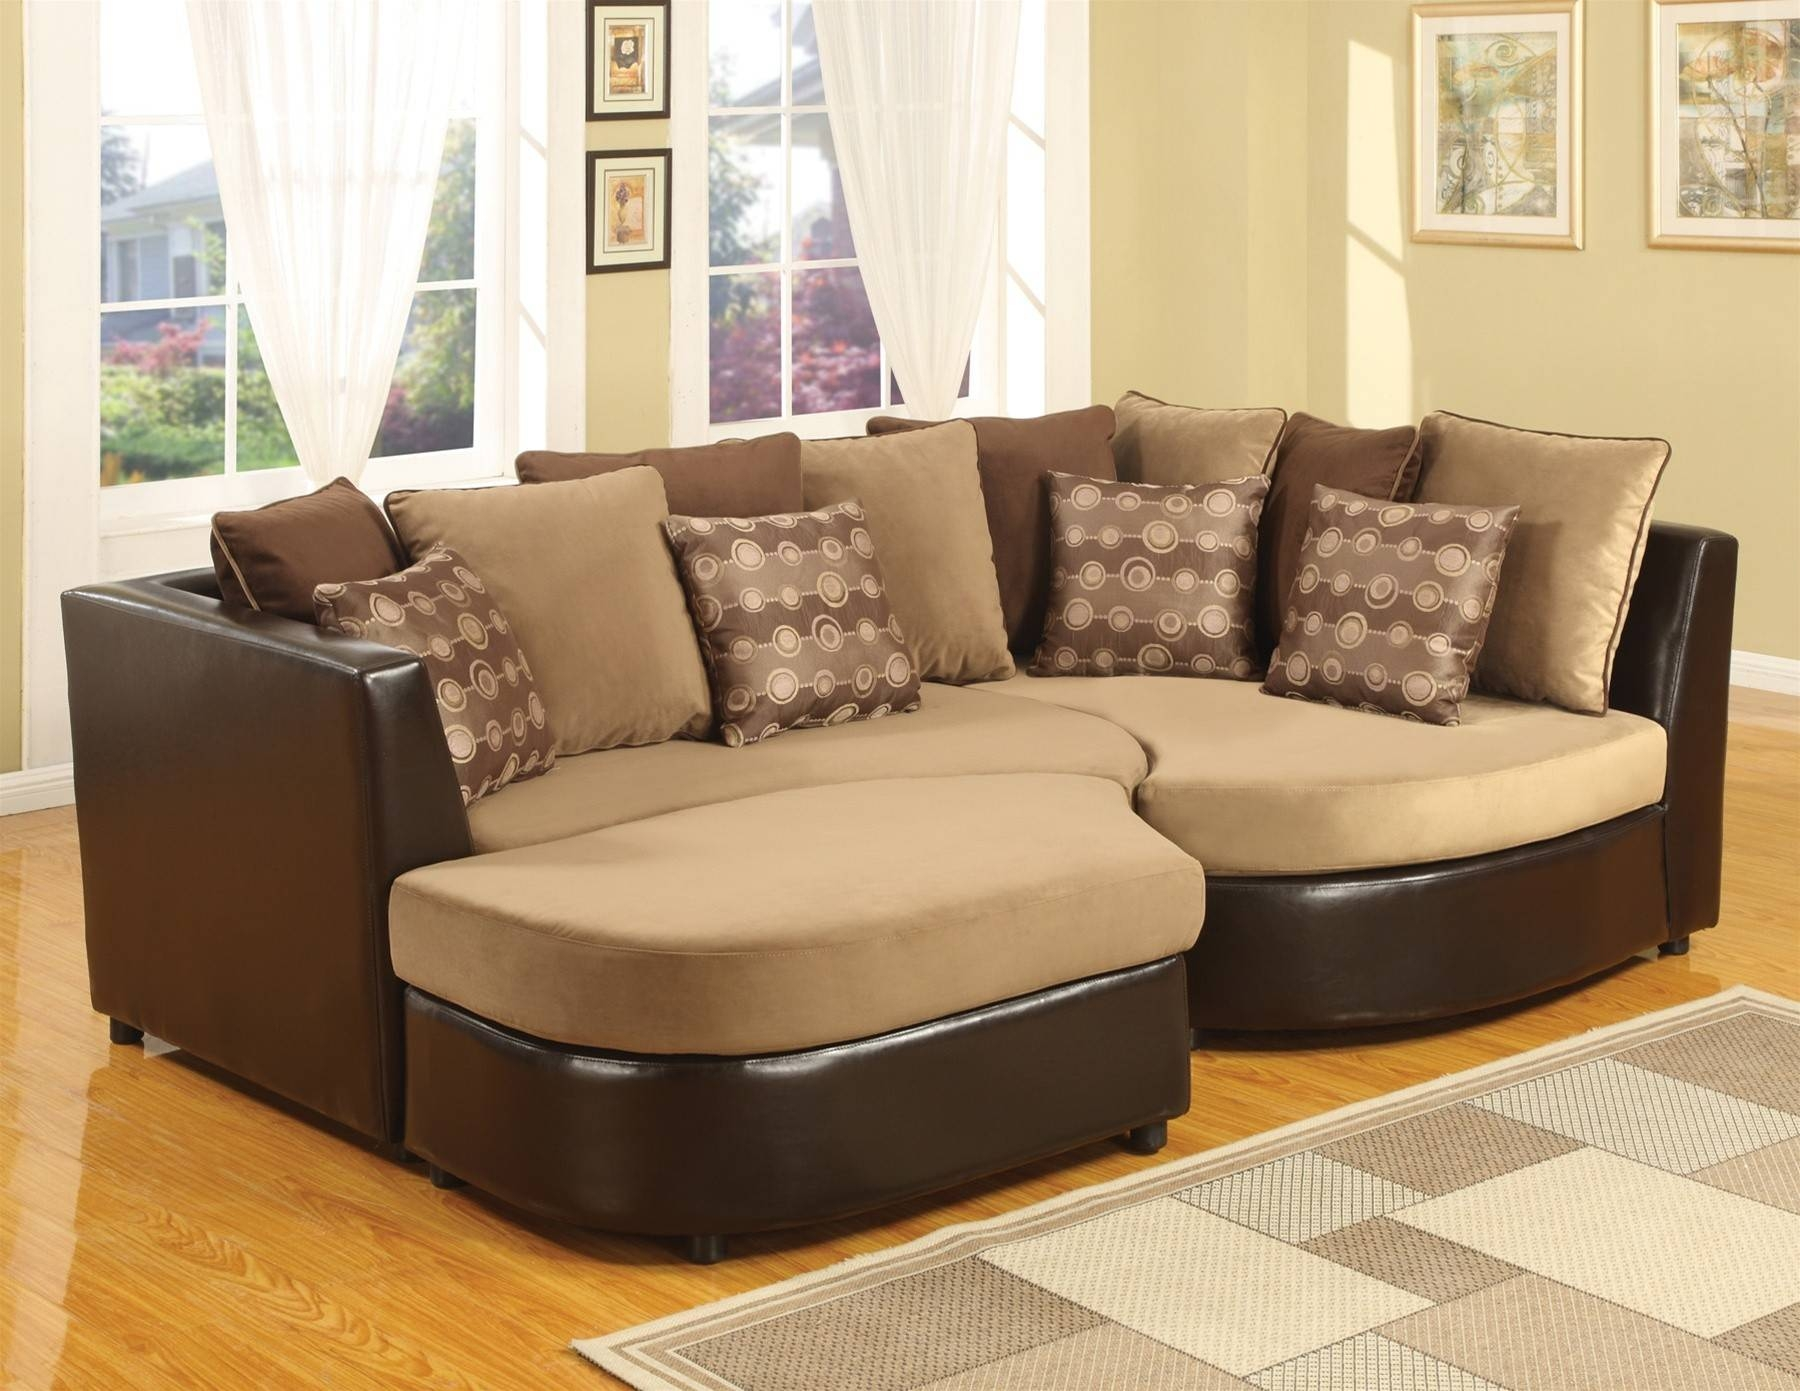 Furniture: Great Pit Sectional For Living Room Furniture Ideas inside Pit Sofas (Image 7 of 30)